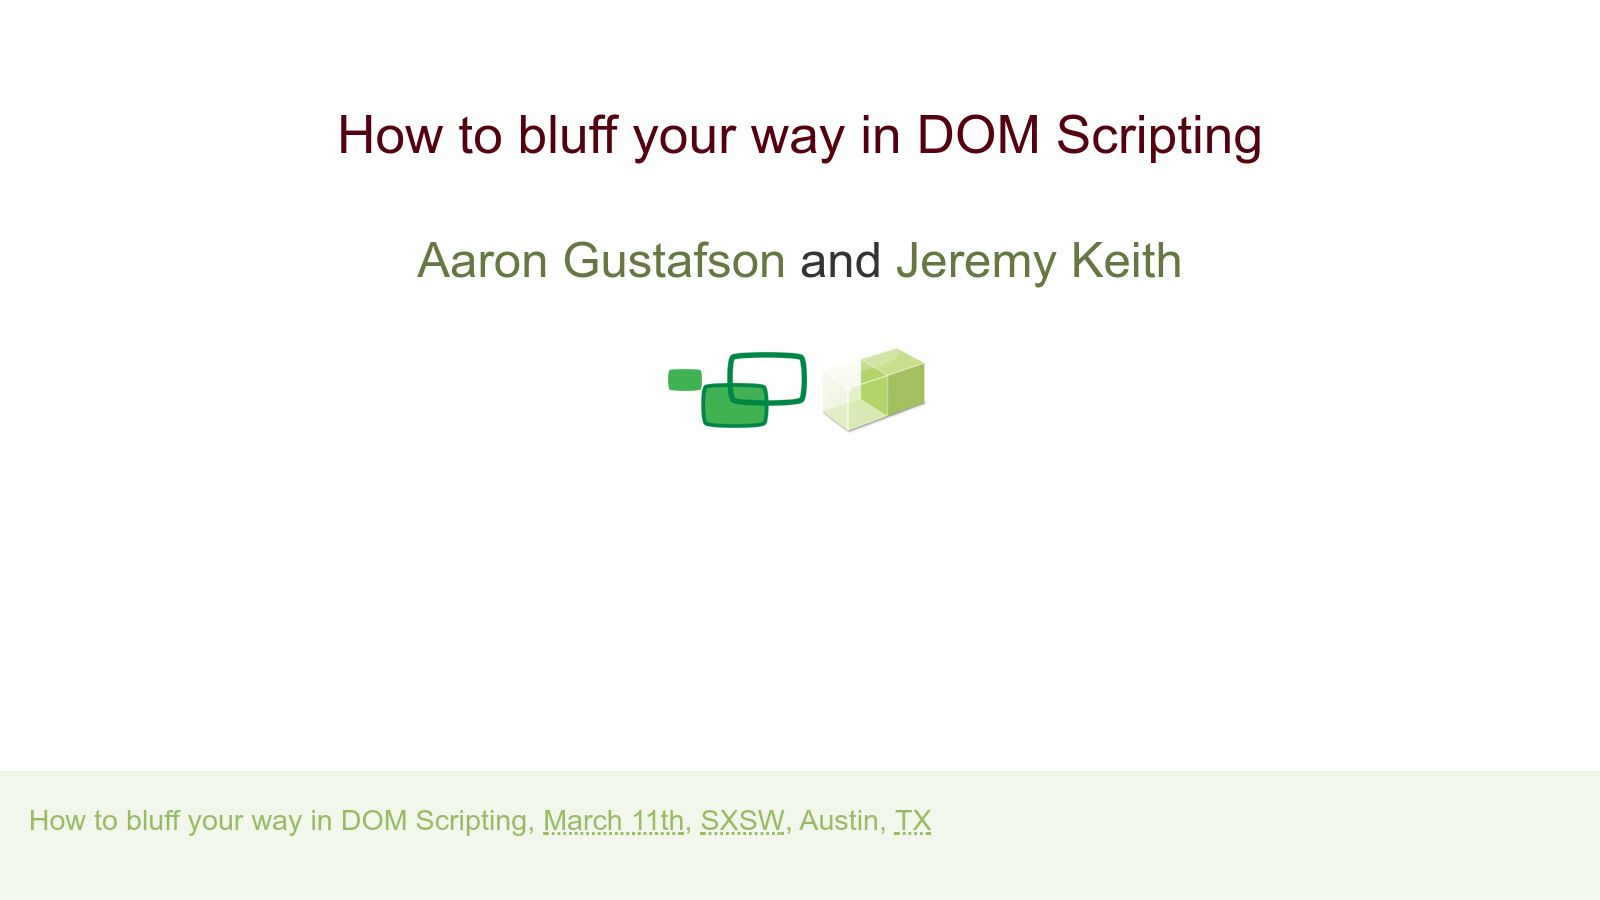 How to Bluff Your Way in DOM Scripting